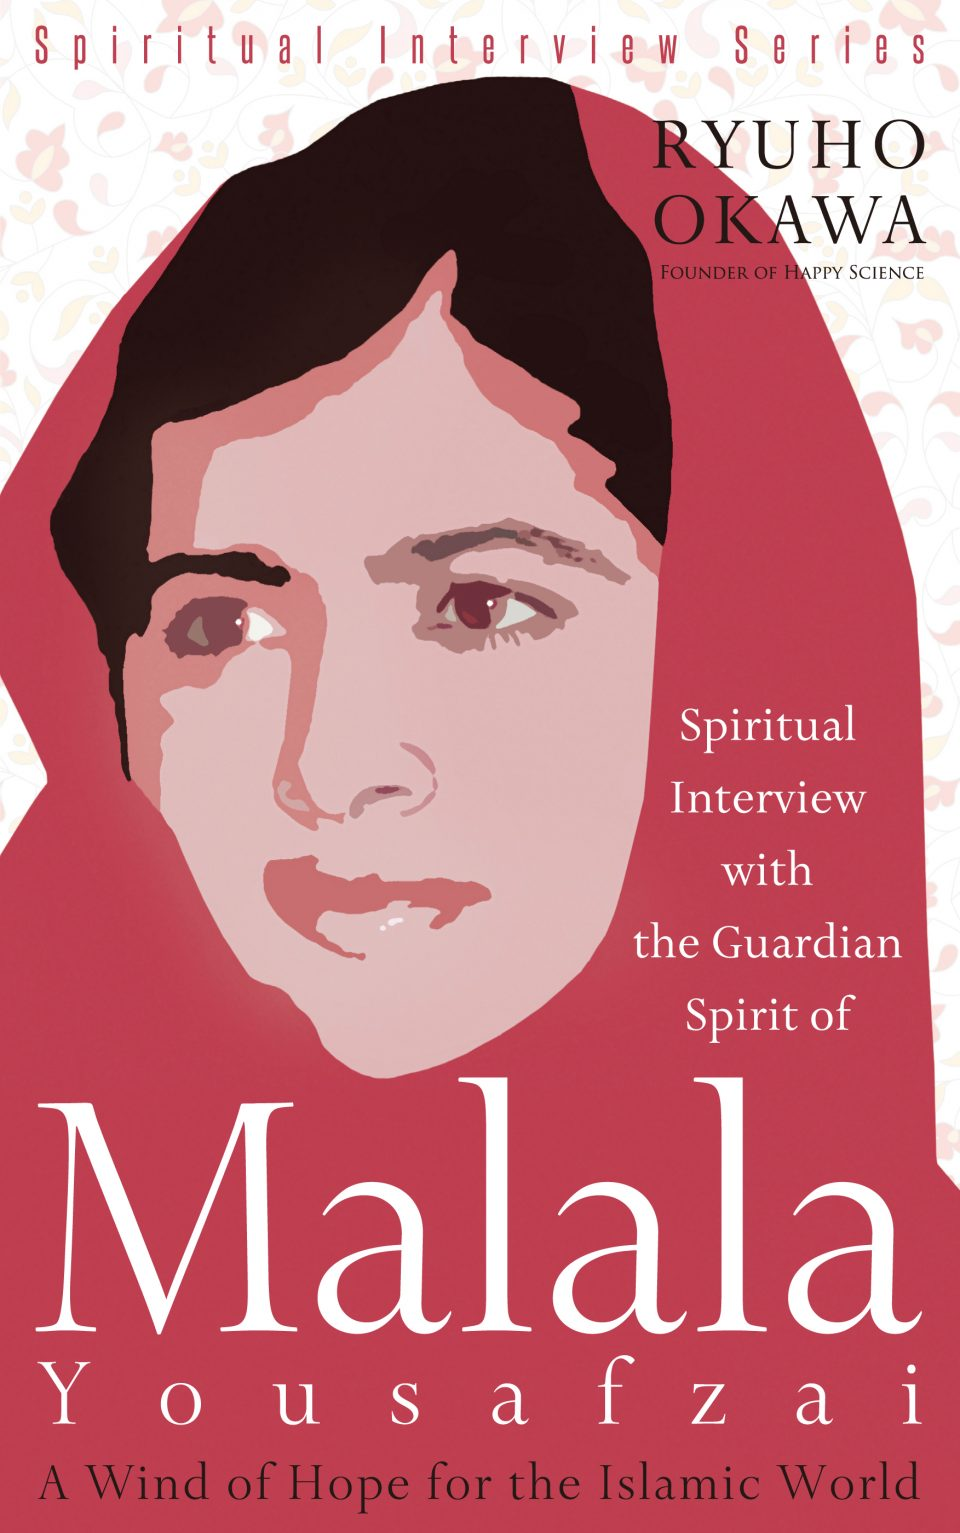 Spiritual Interview with the Guardian Spirit of Malala Yousafzai is out now!